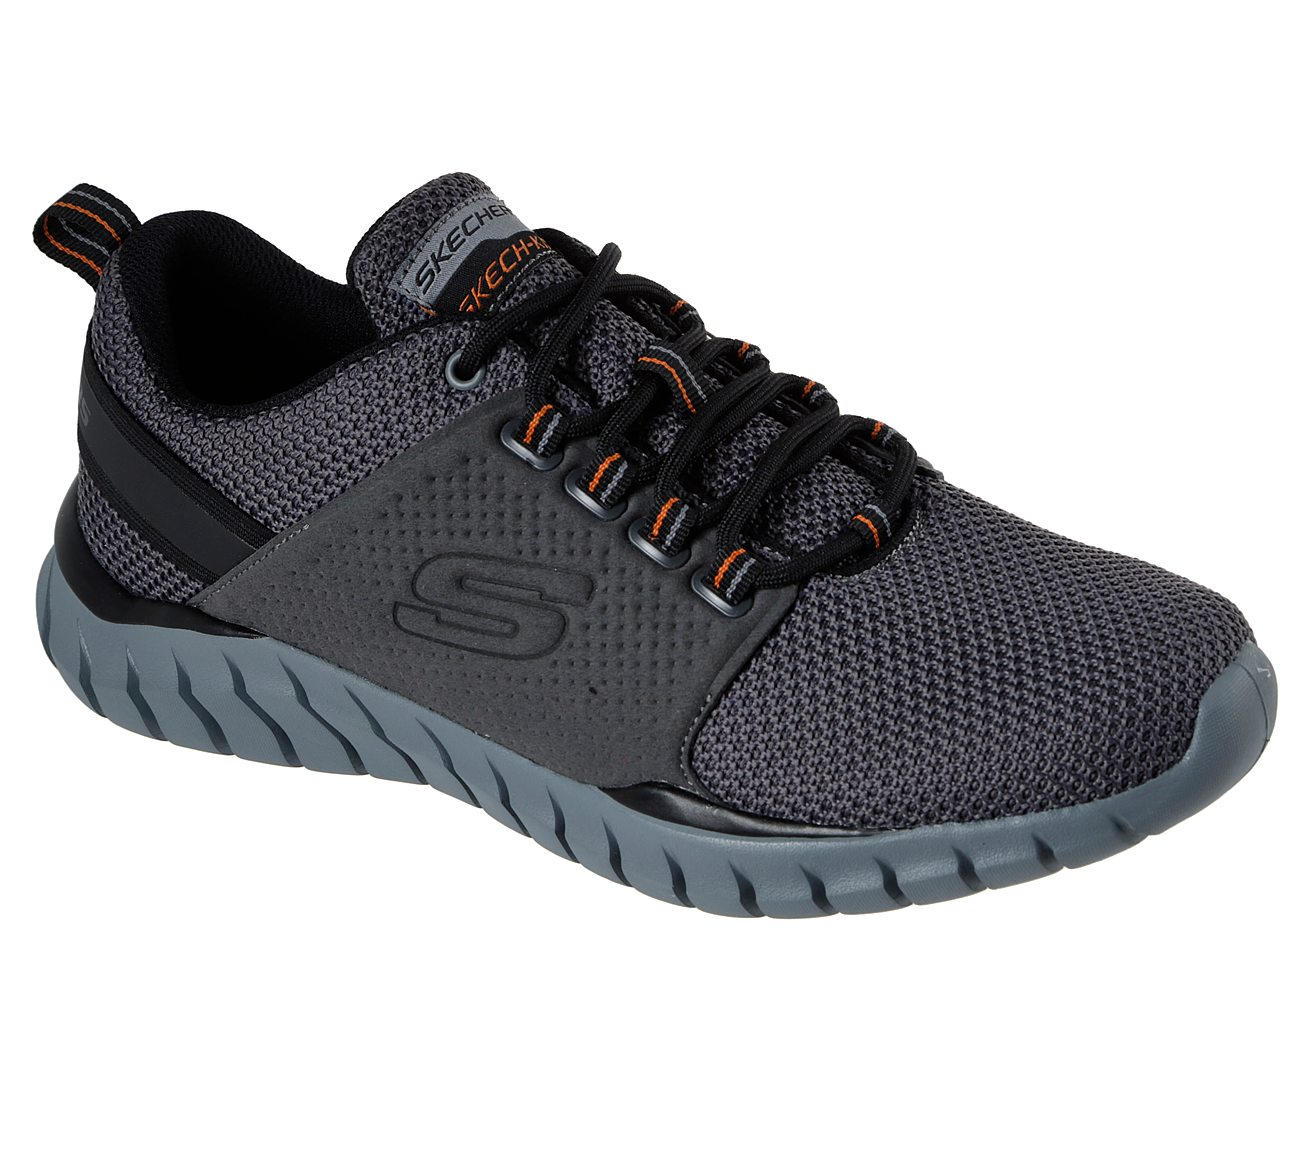 Get in Style with Unique Skechers Shoes